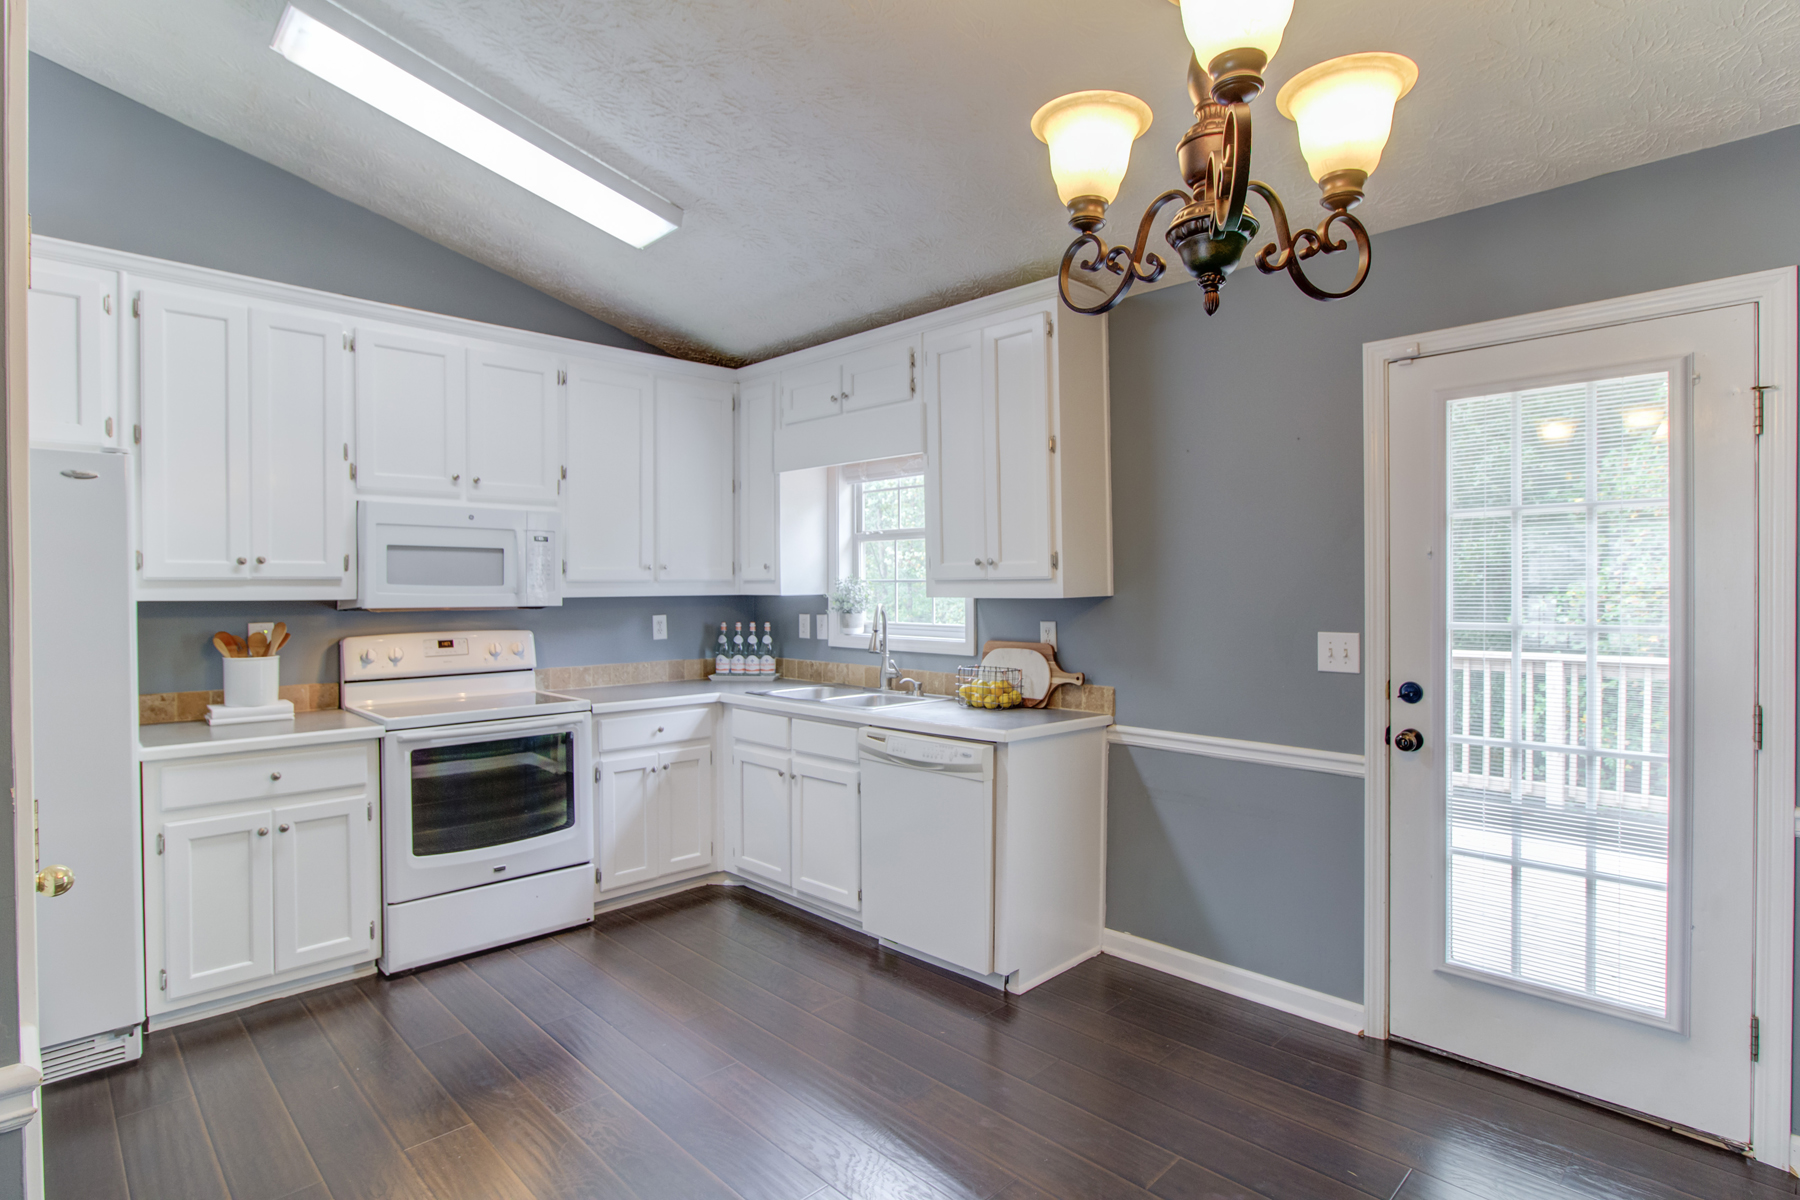 Single Family Homes のために 売買 アット Renovated Flowery Branch Home with Amenities 5318 Ashland Drive, Flowery Branch, ジョージア 30542 アメリカ